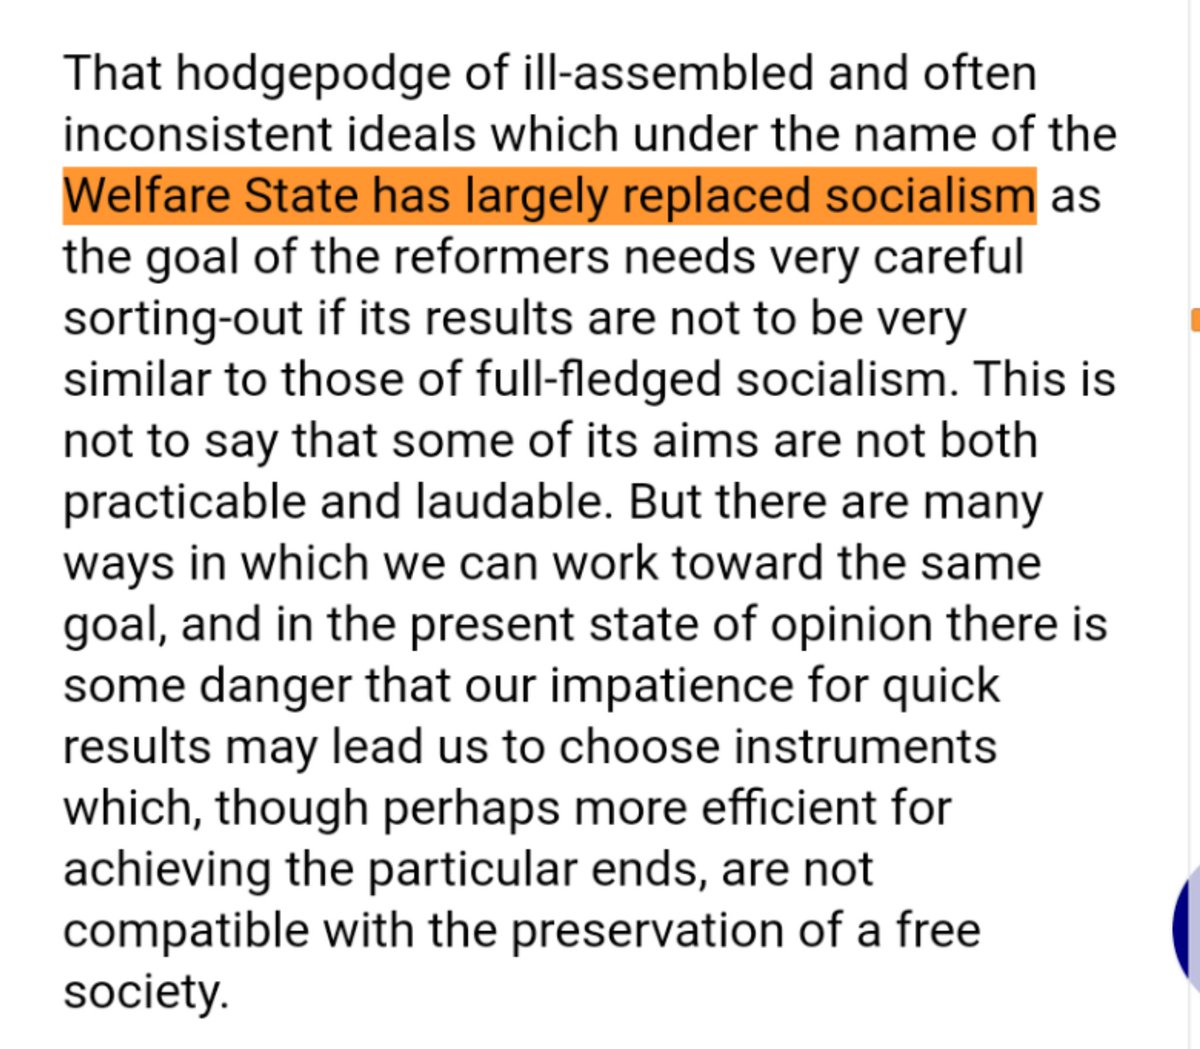 @lindsey_brink @ModeledBehavior @karlbykarlsmith @IrvingSwisher Hayek also said that the welfare state was the new socialism and to also be on guard for it leading down the road to serfdom in his 1956 preface as well, which was his formal introduction of the book to American audiences.